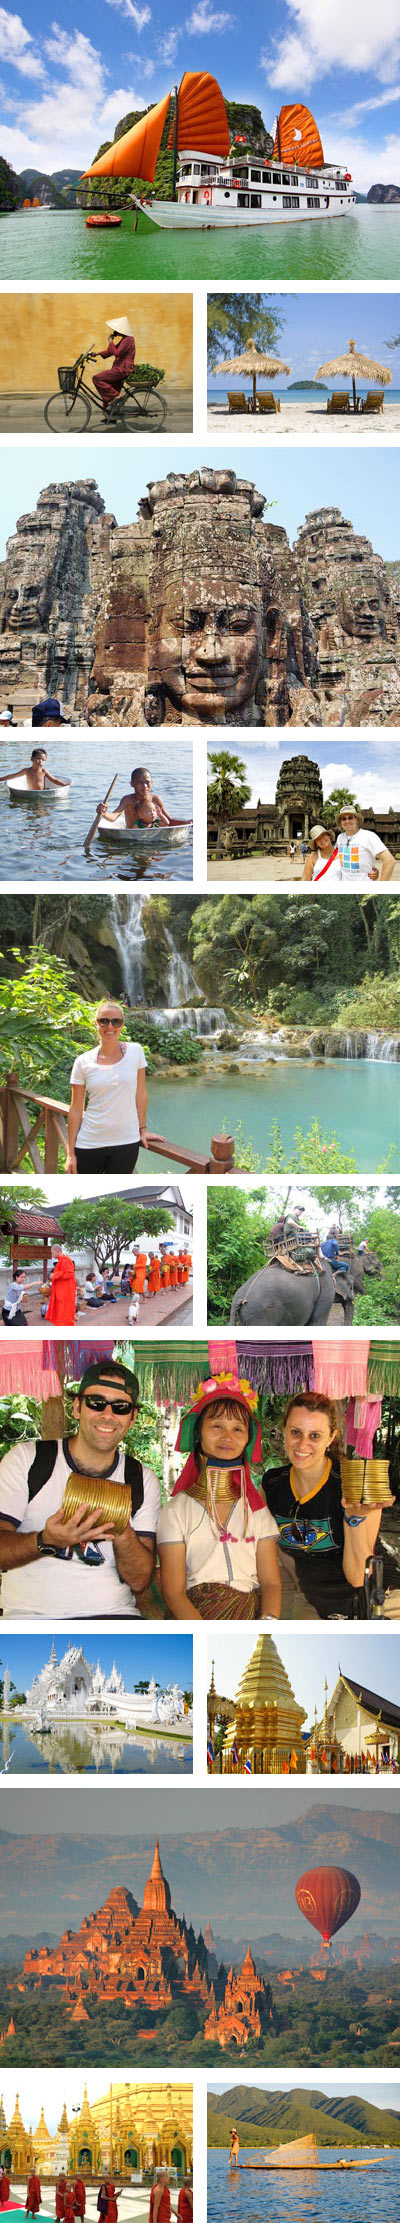 Indochina Panorama 24 Days Tour Package